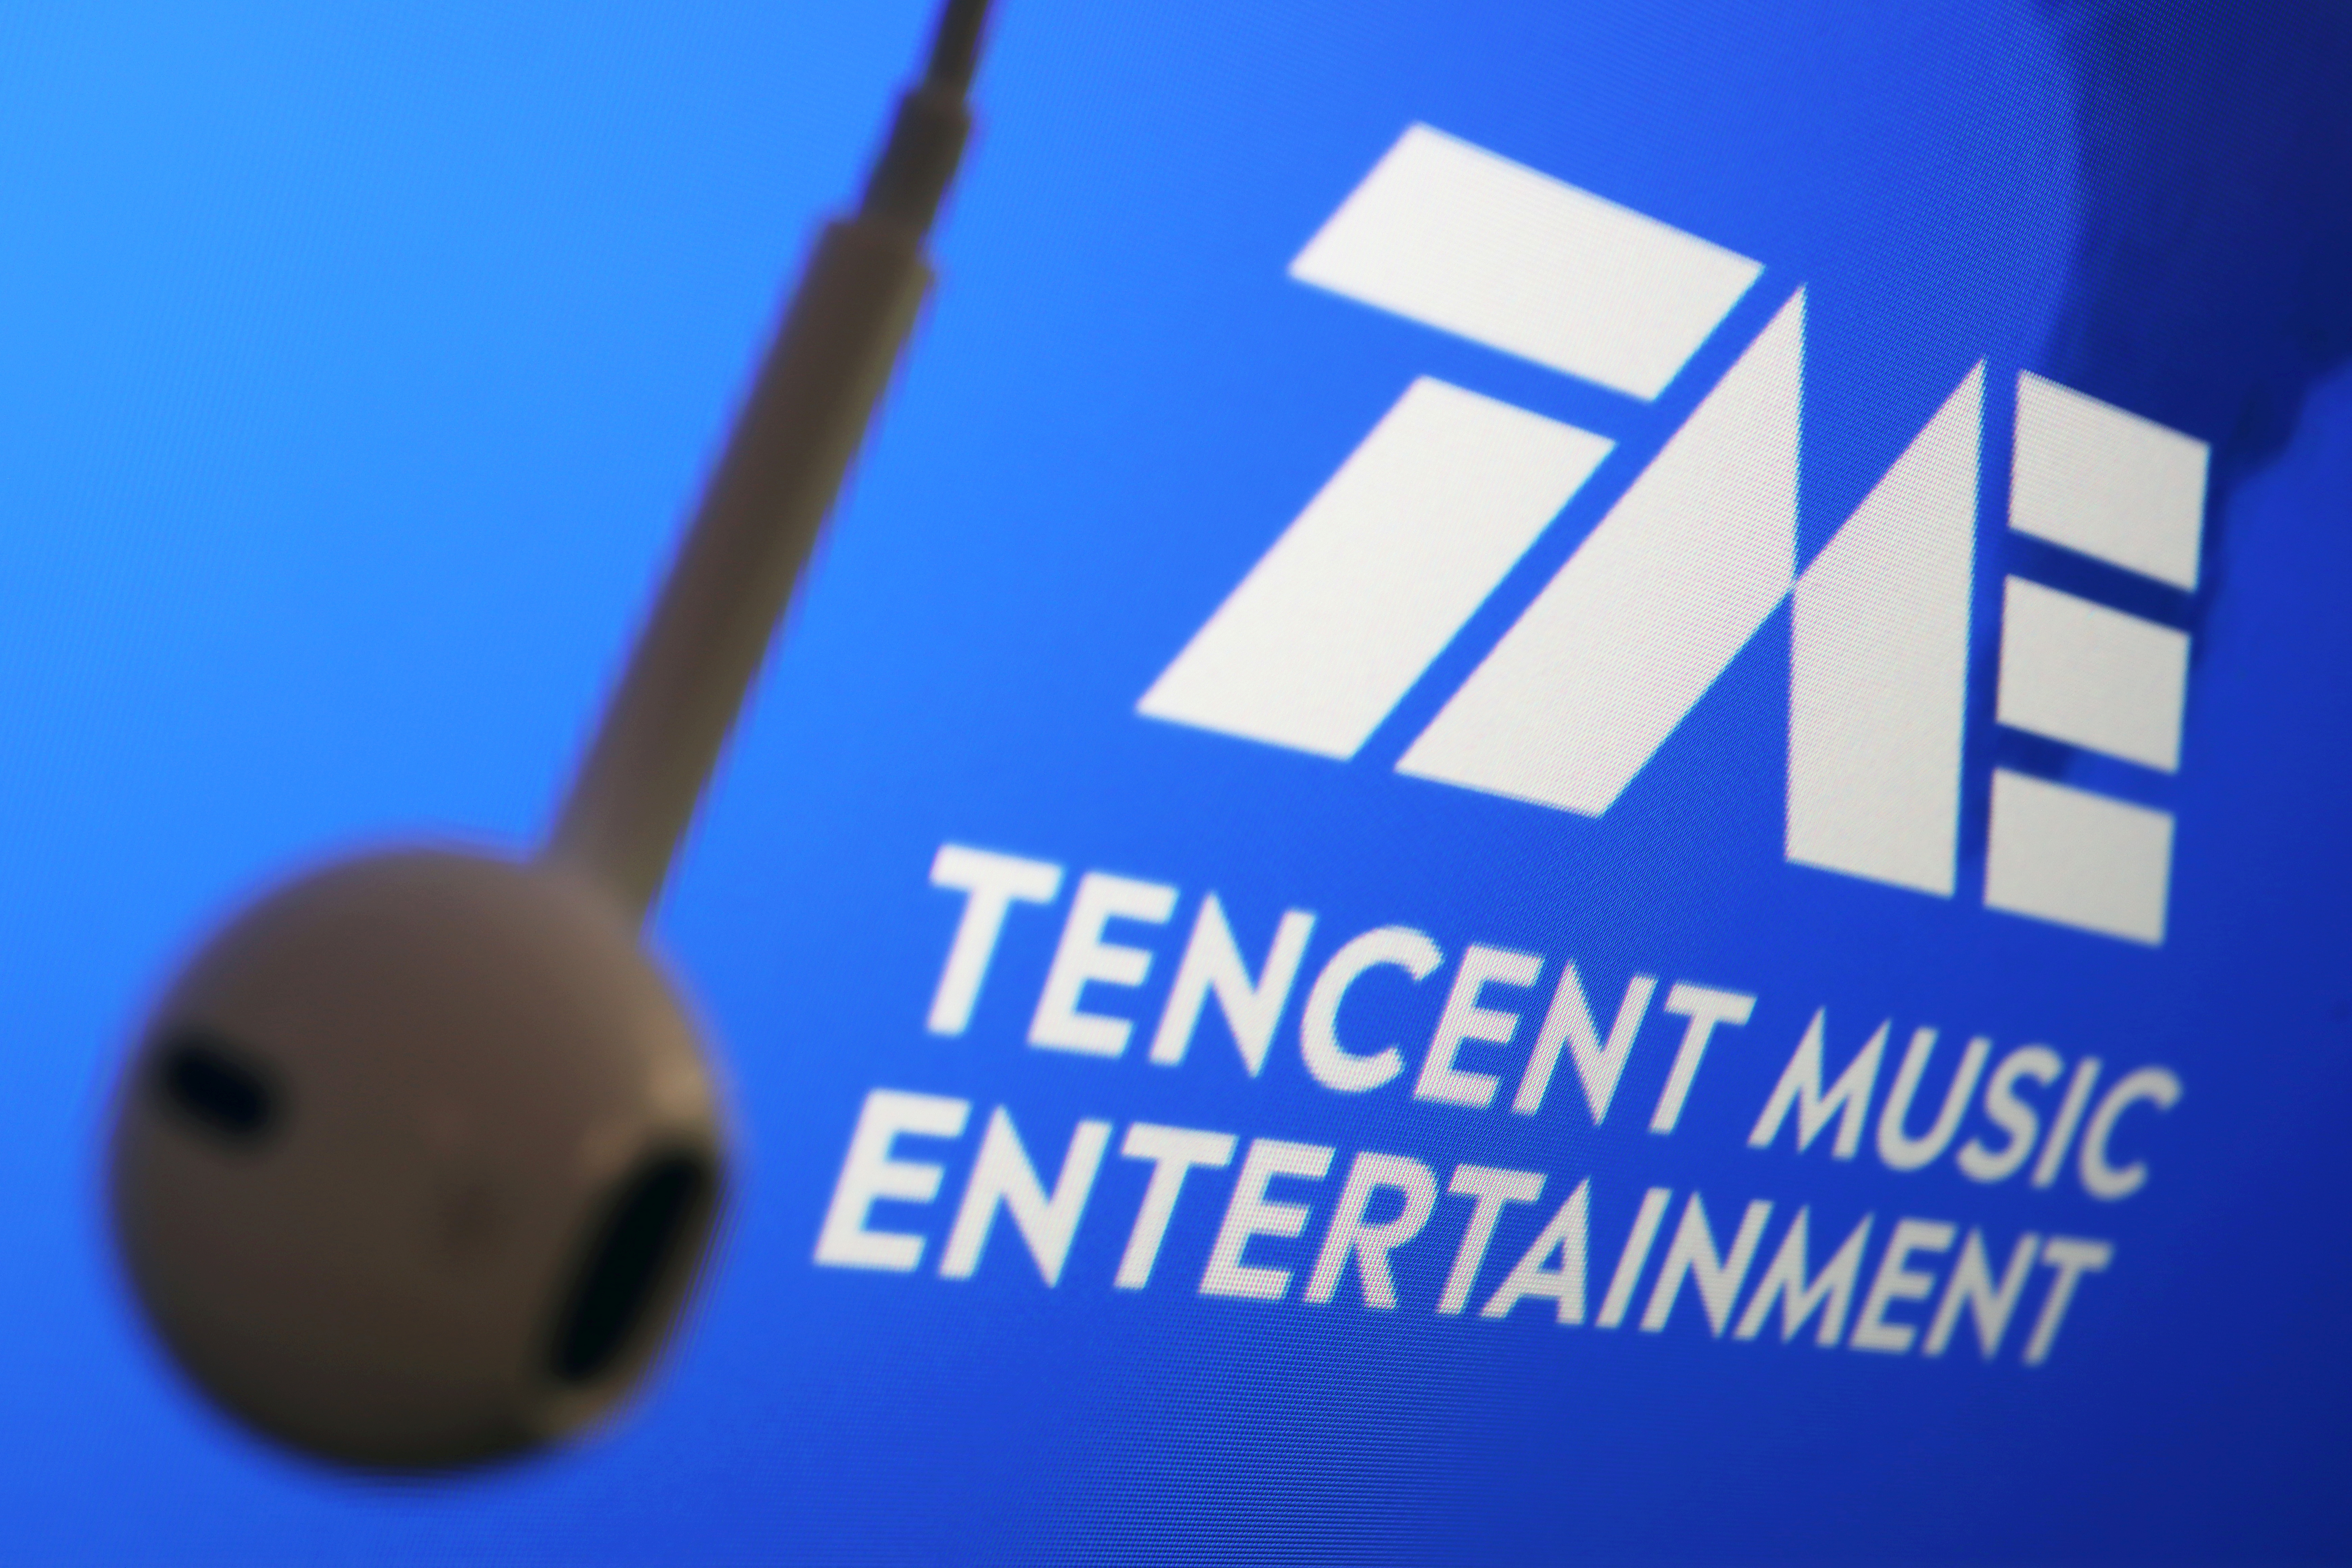 The logo of China's Tencent Music Entertainment Group is seen next to an earphone in this illustration picture taken March 22, 2021. REUTERS/Florence Lo/Illustration